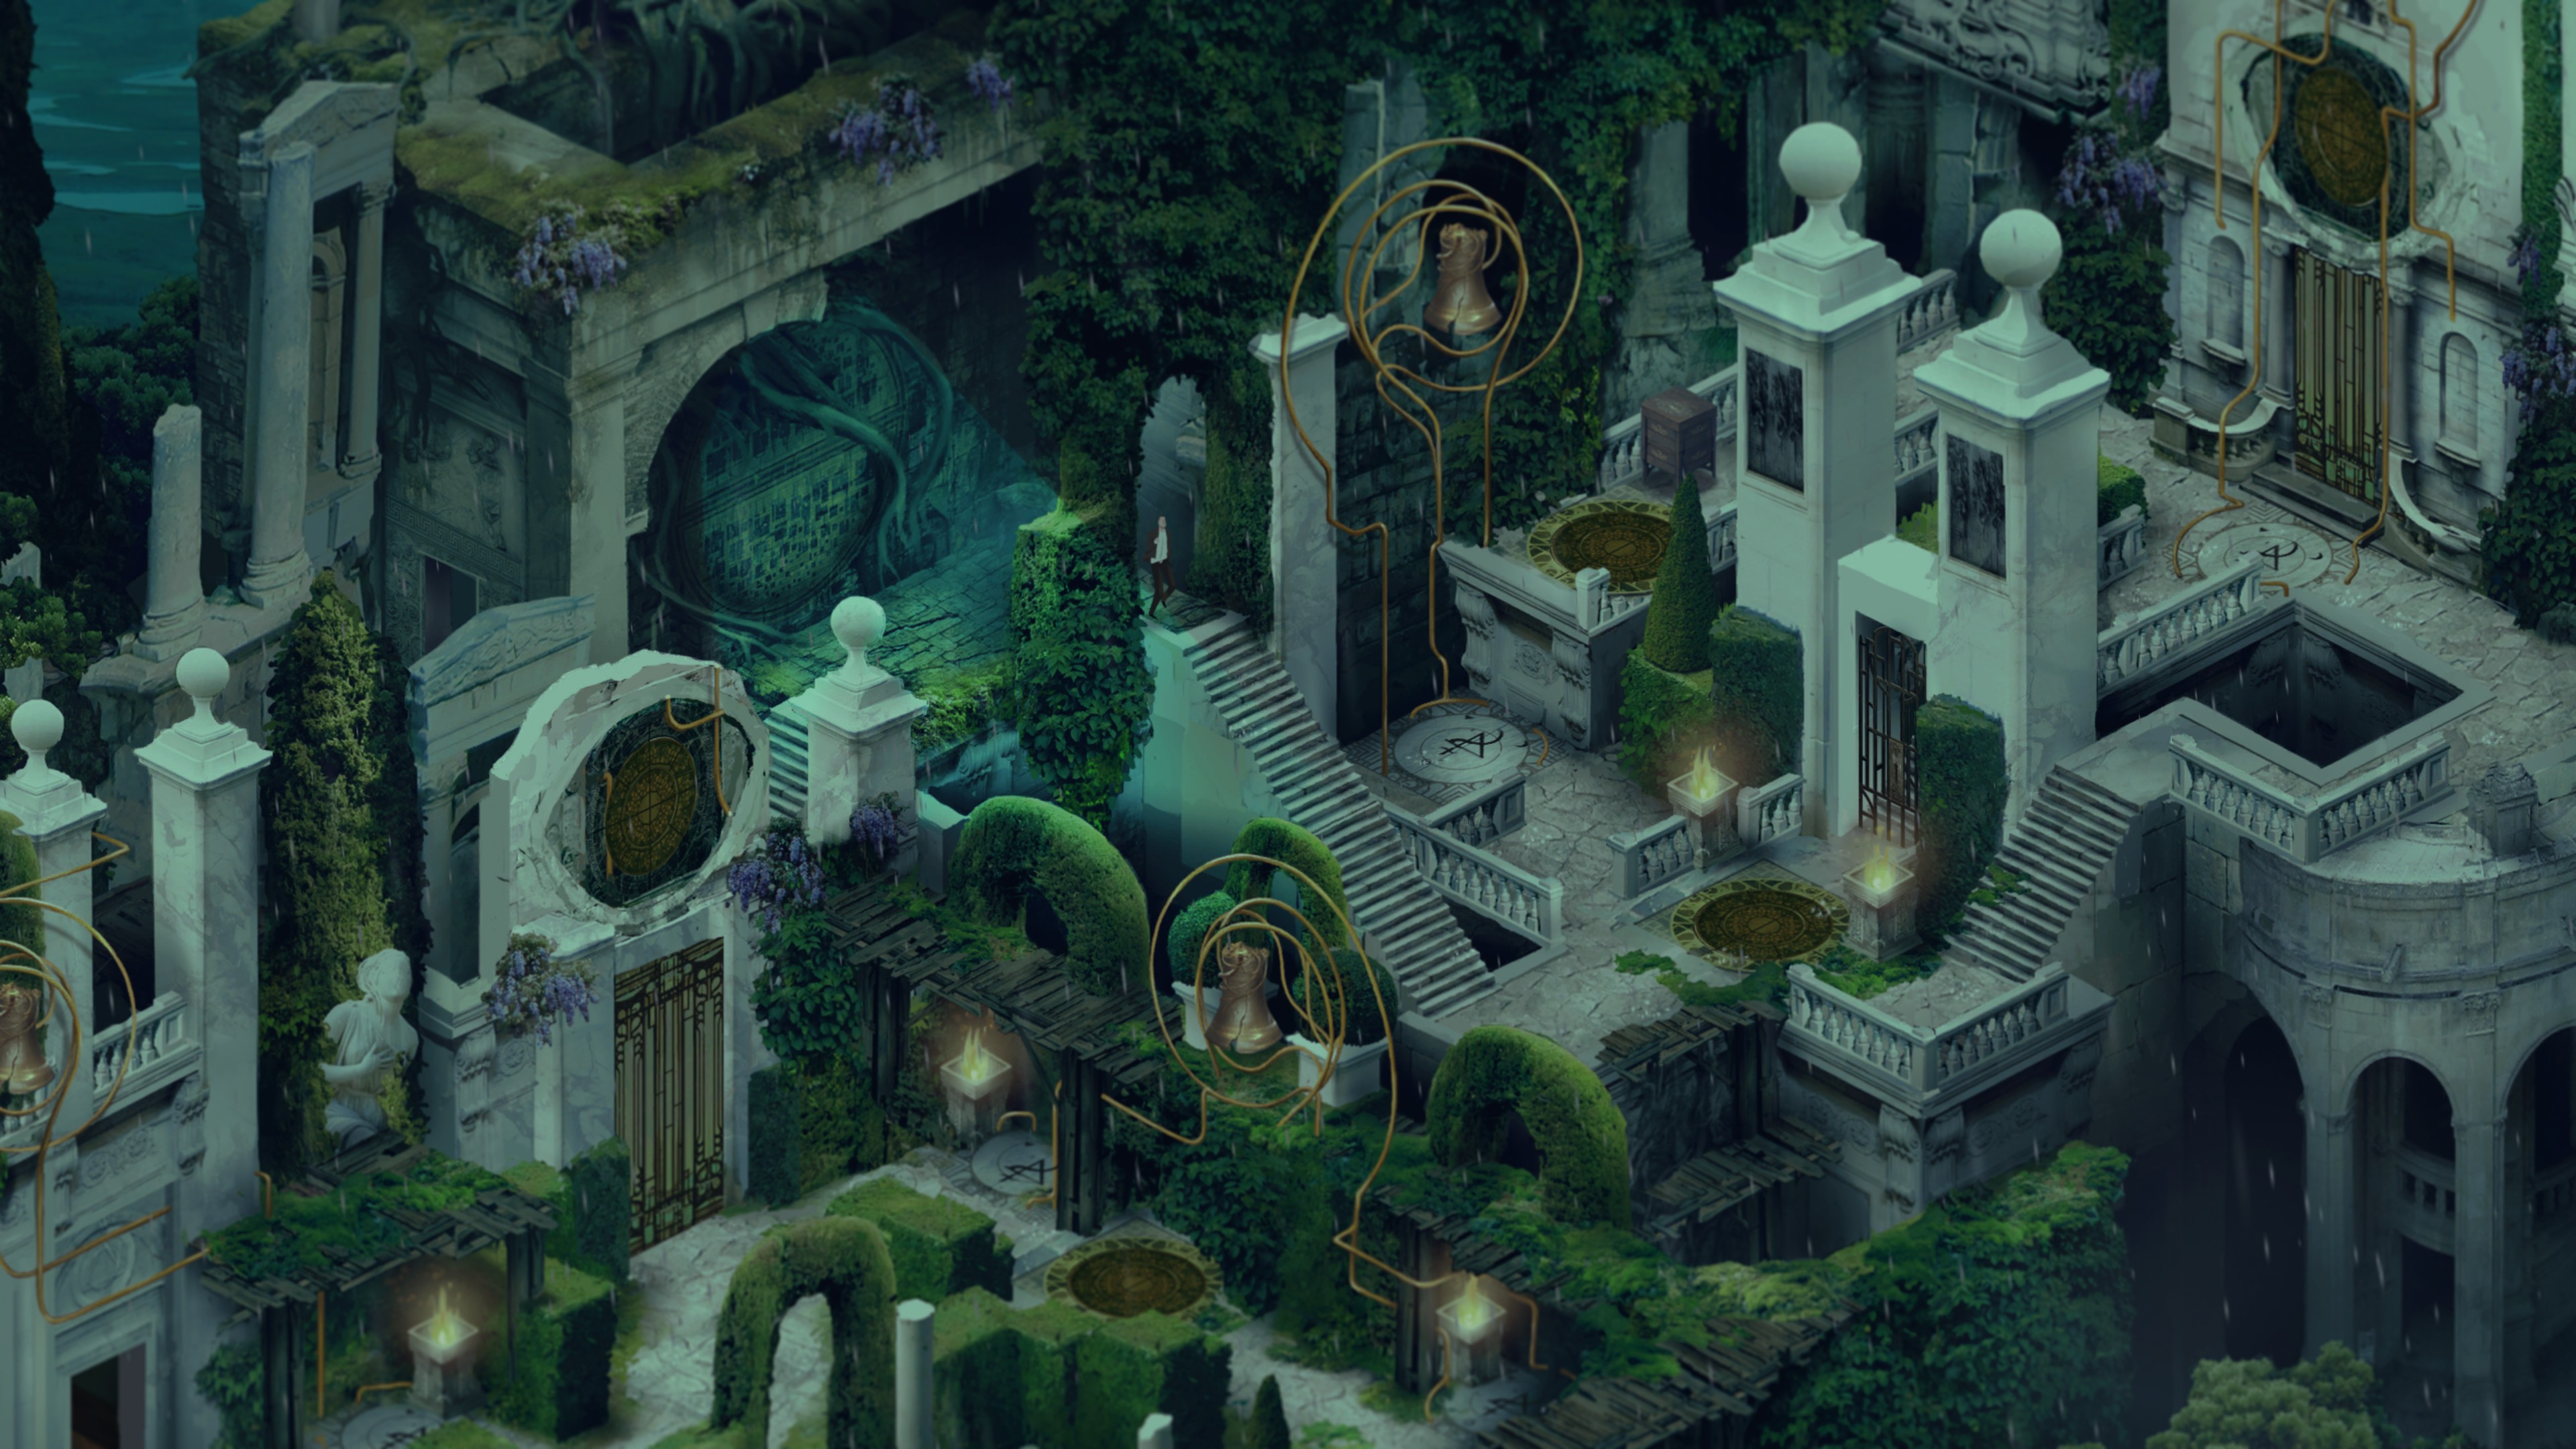 The main character of Pavilion walks through a garden of carved marble, ivy, and perfectly shaped bushes.